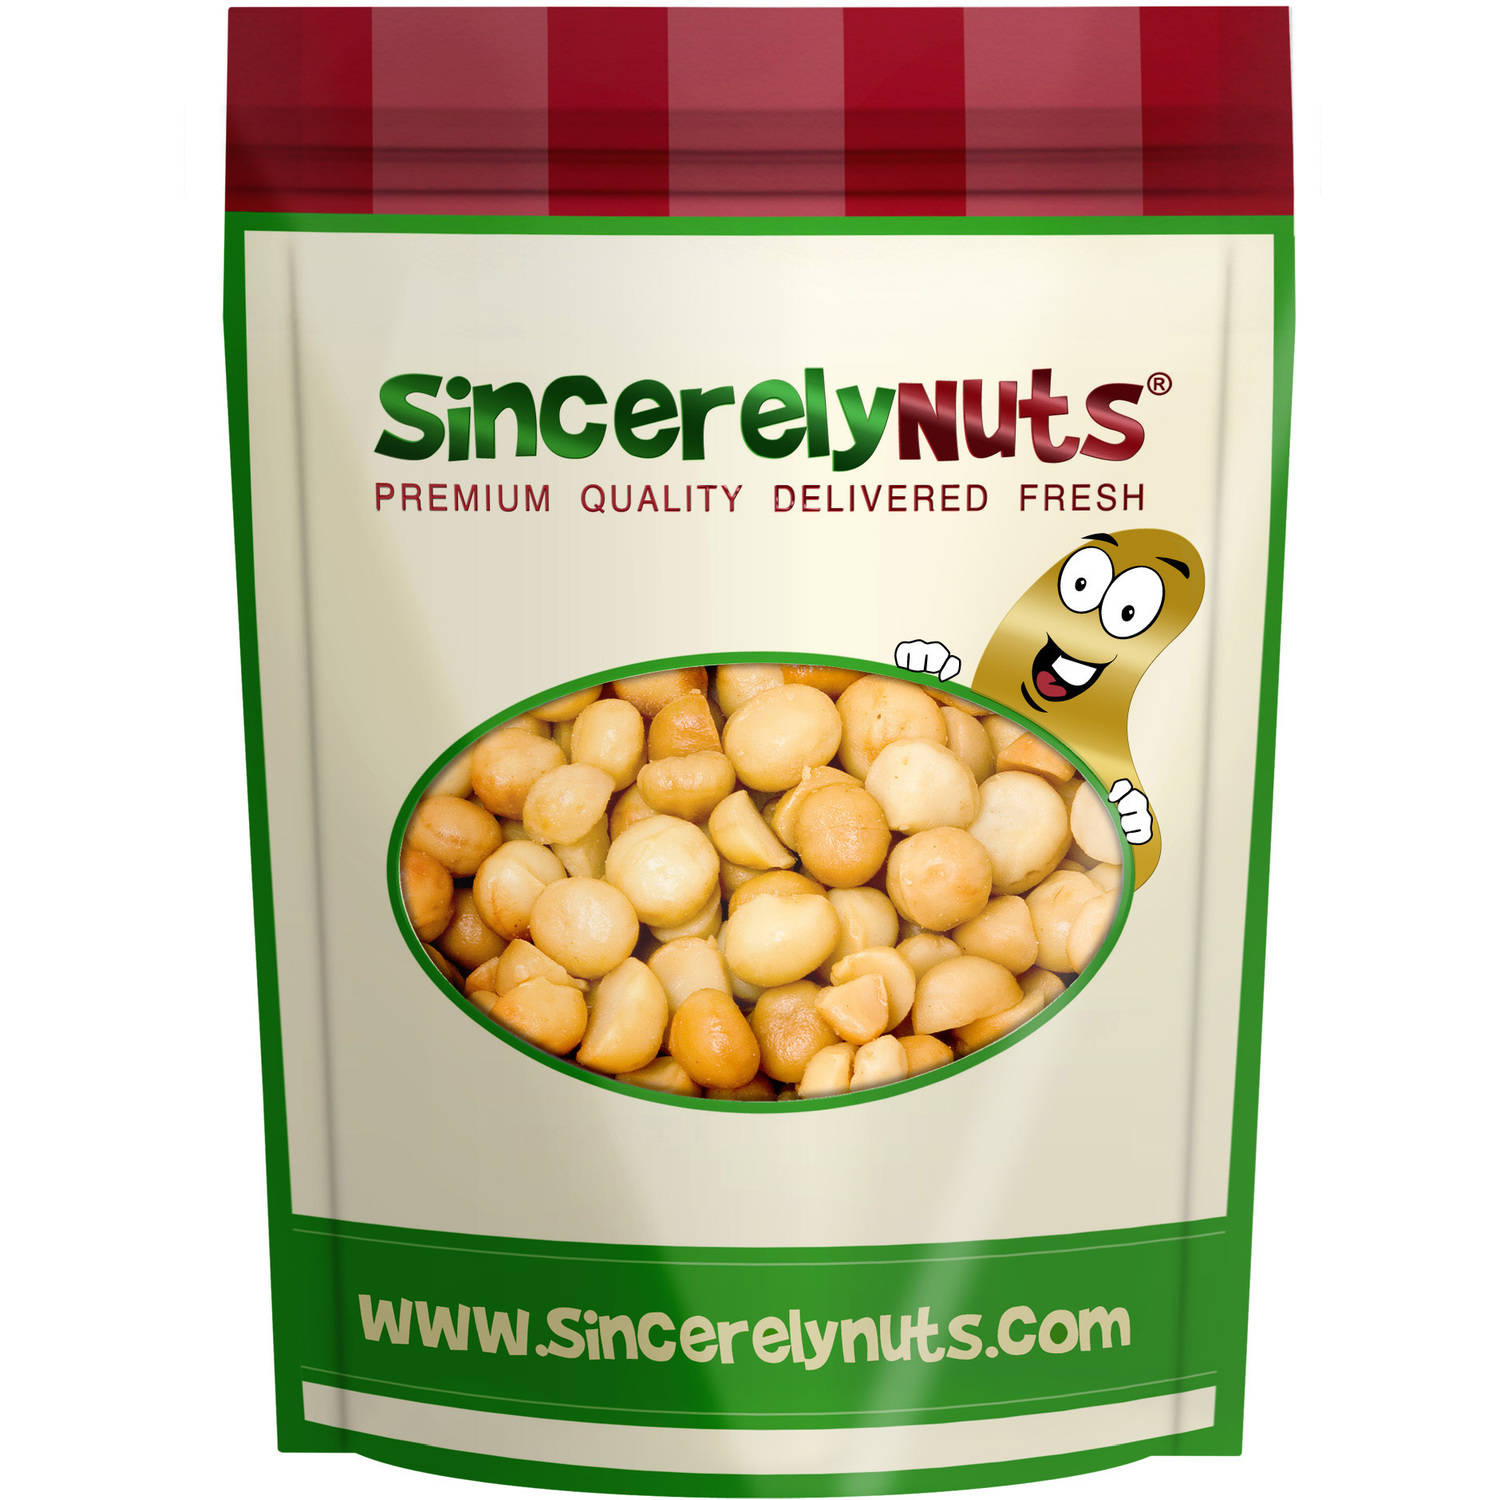 Sincerely Nuts Macadamia Nuts Roasted Salted, 2 LB Bag by Sincerely Nuts